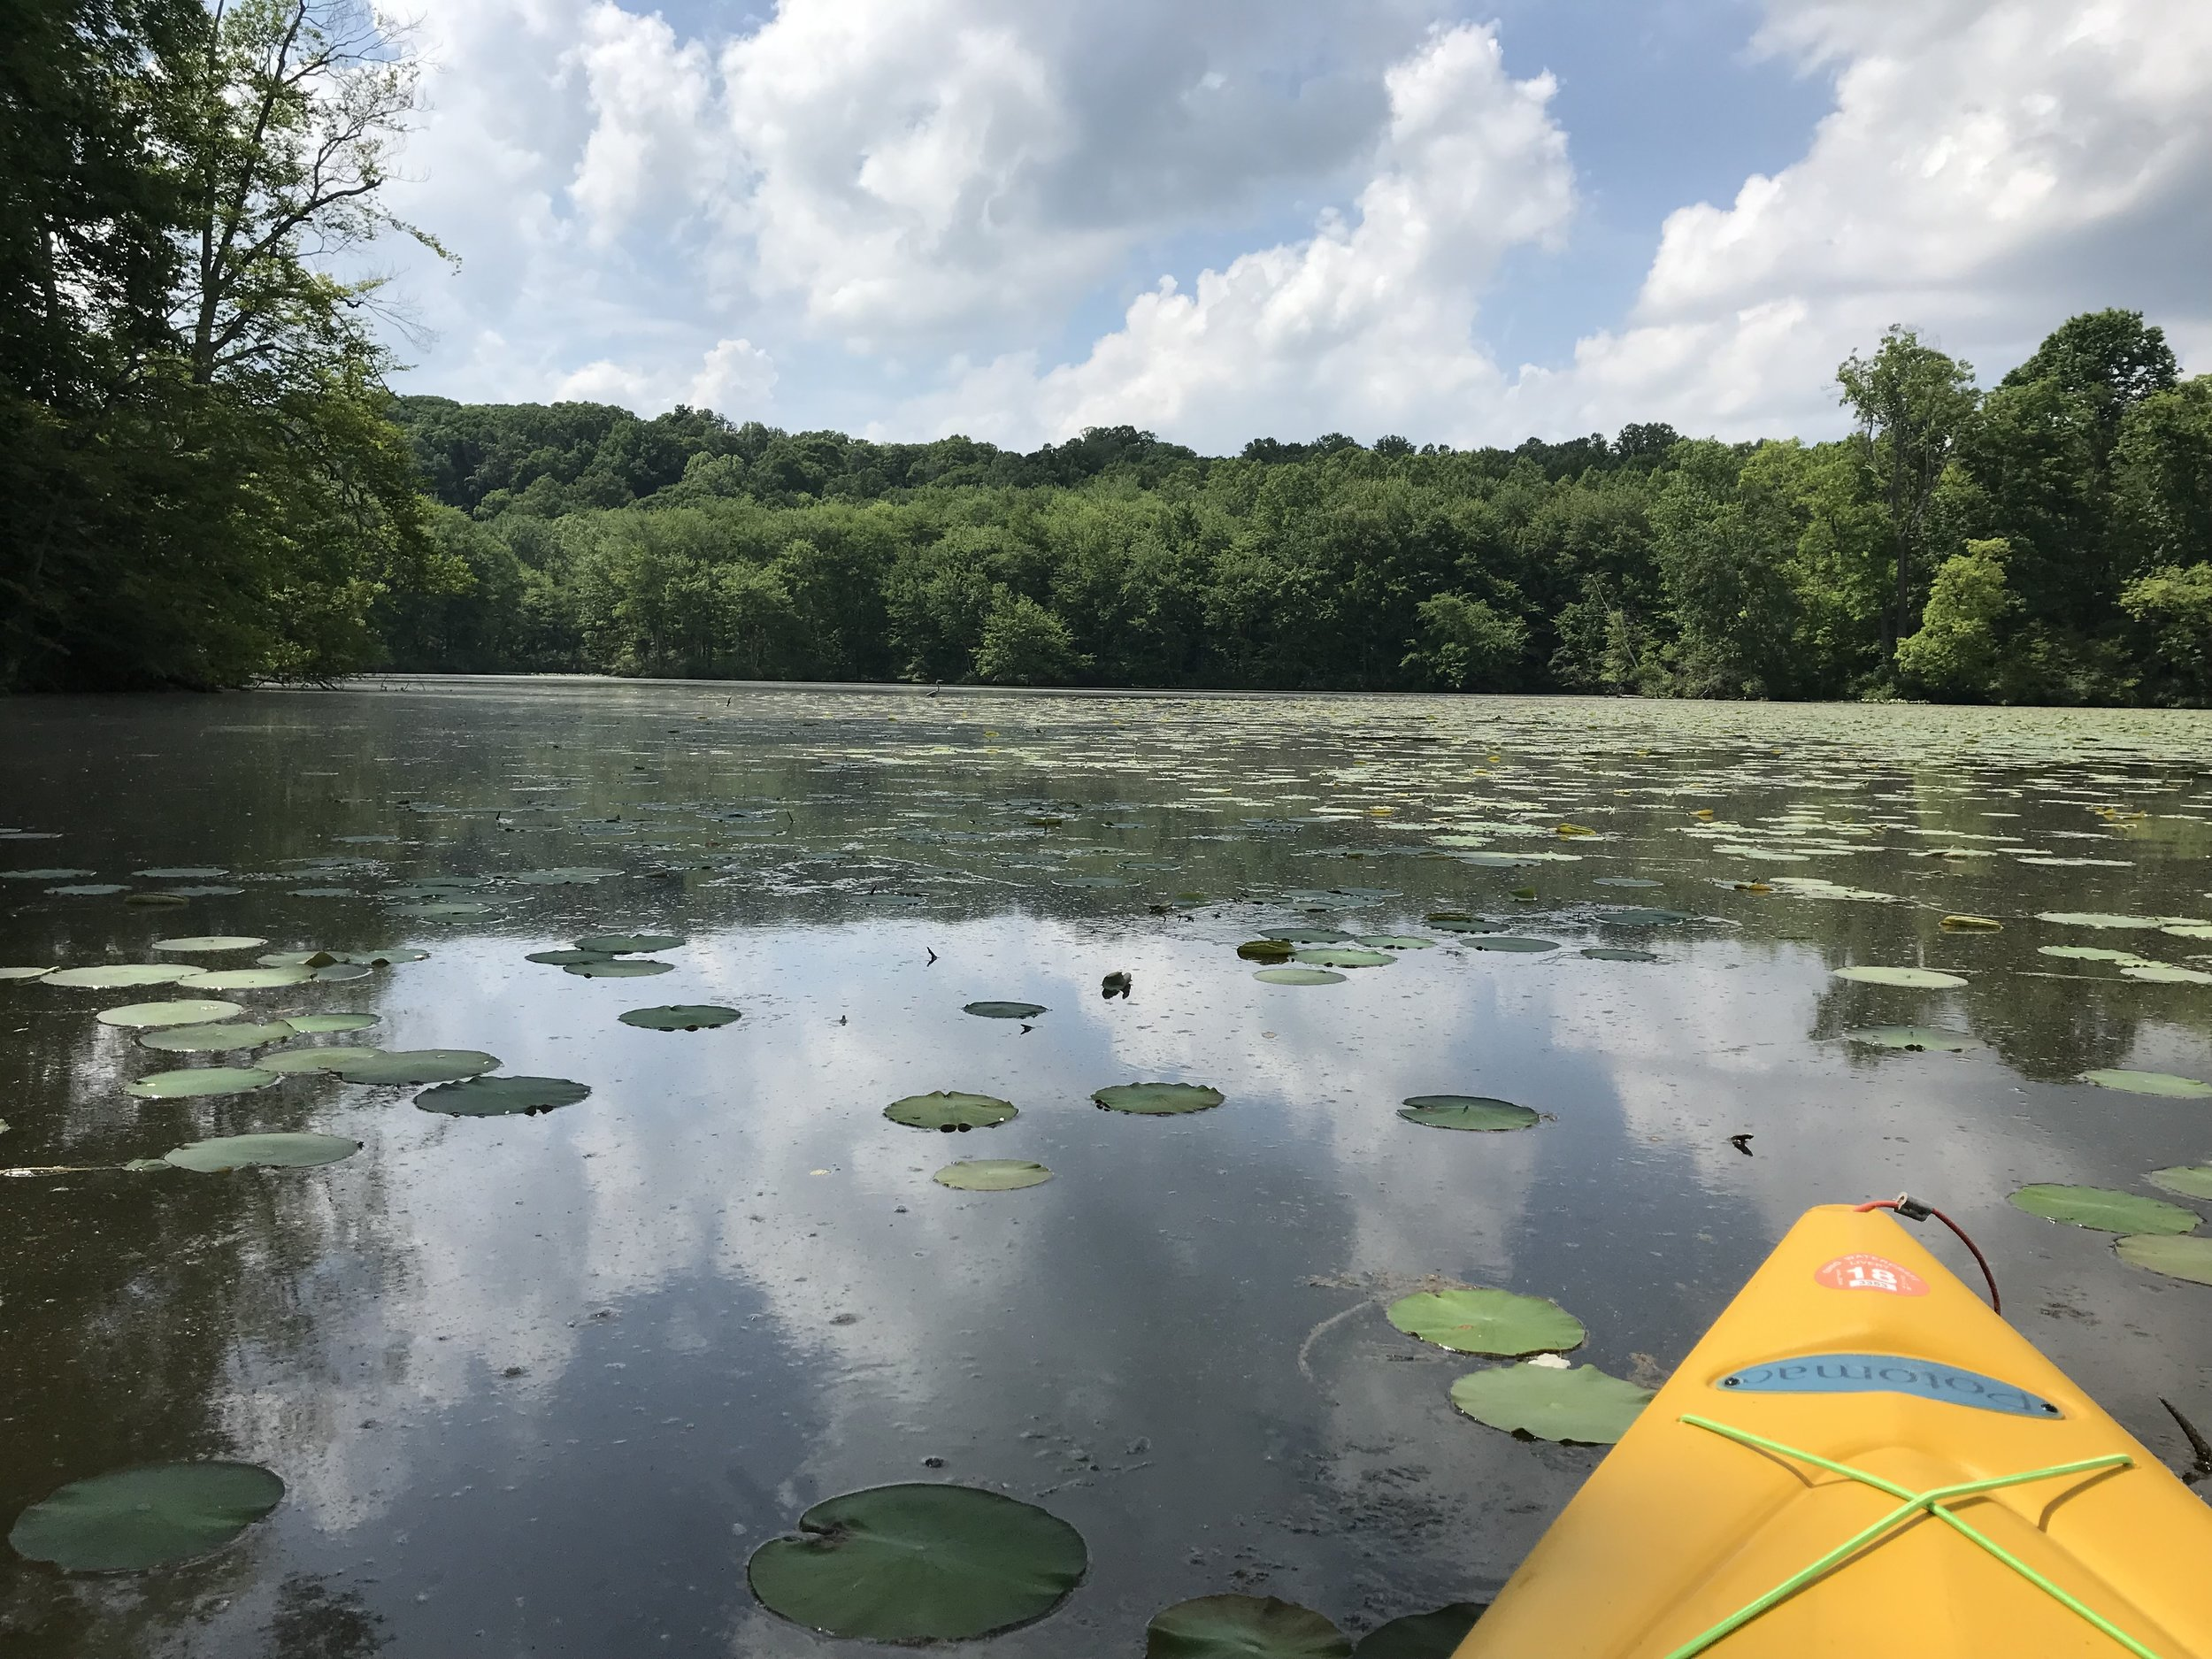 The  Lake Logan Marina  is a great place to rent a kayak and take a paddle out on Lake Logan, especially into areas like this one where the pontoon boats can't go!